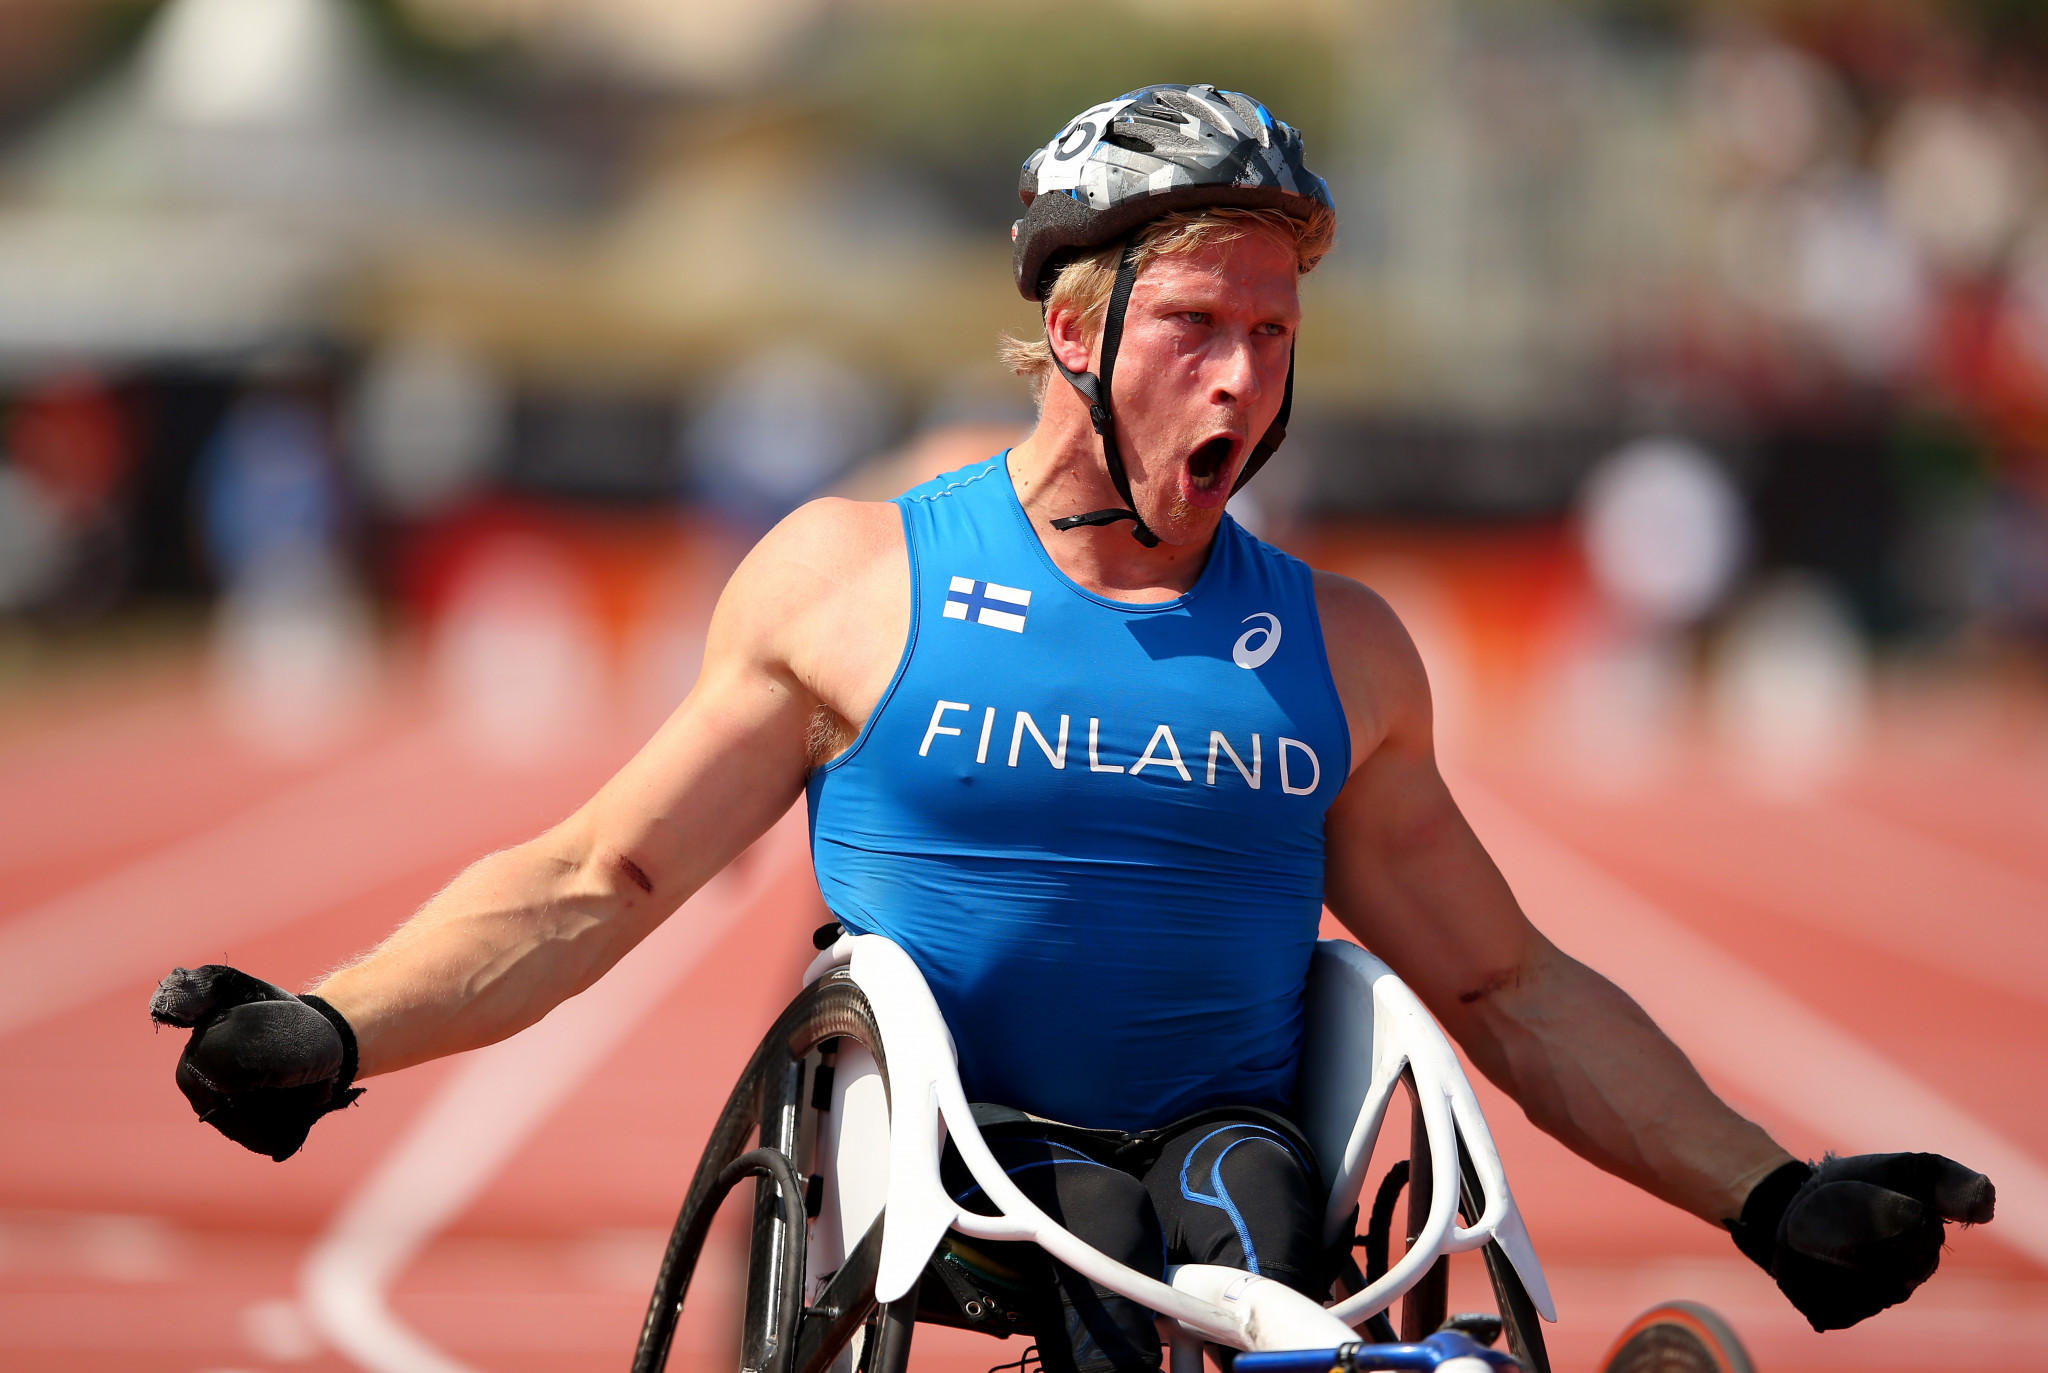 Finland's five-time Paralympic champion Leo Pekka Tahti powered home to gold in the 100m T54 ©Getty Images